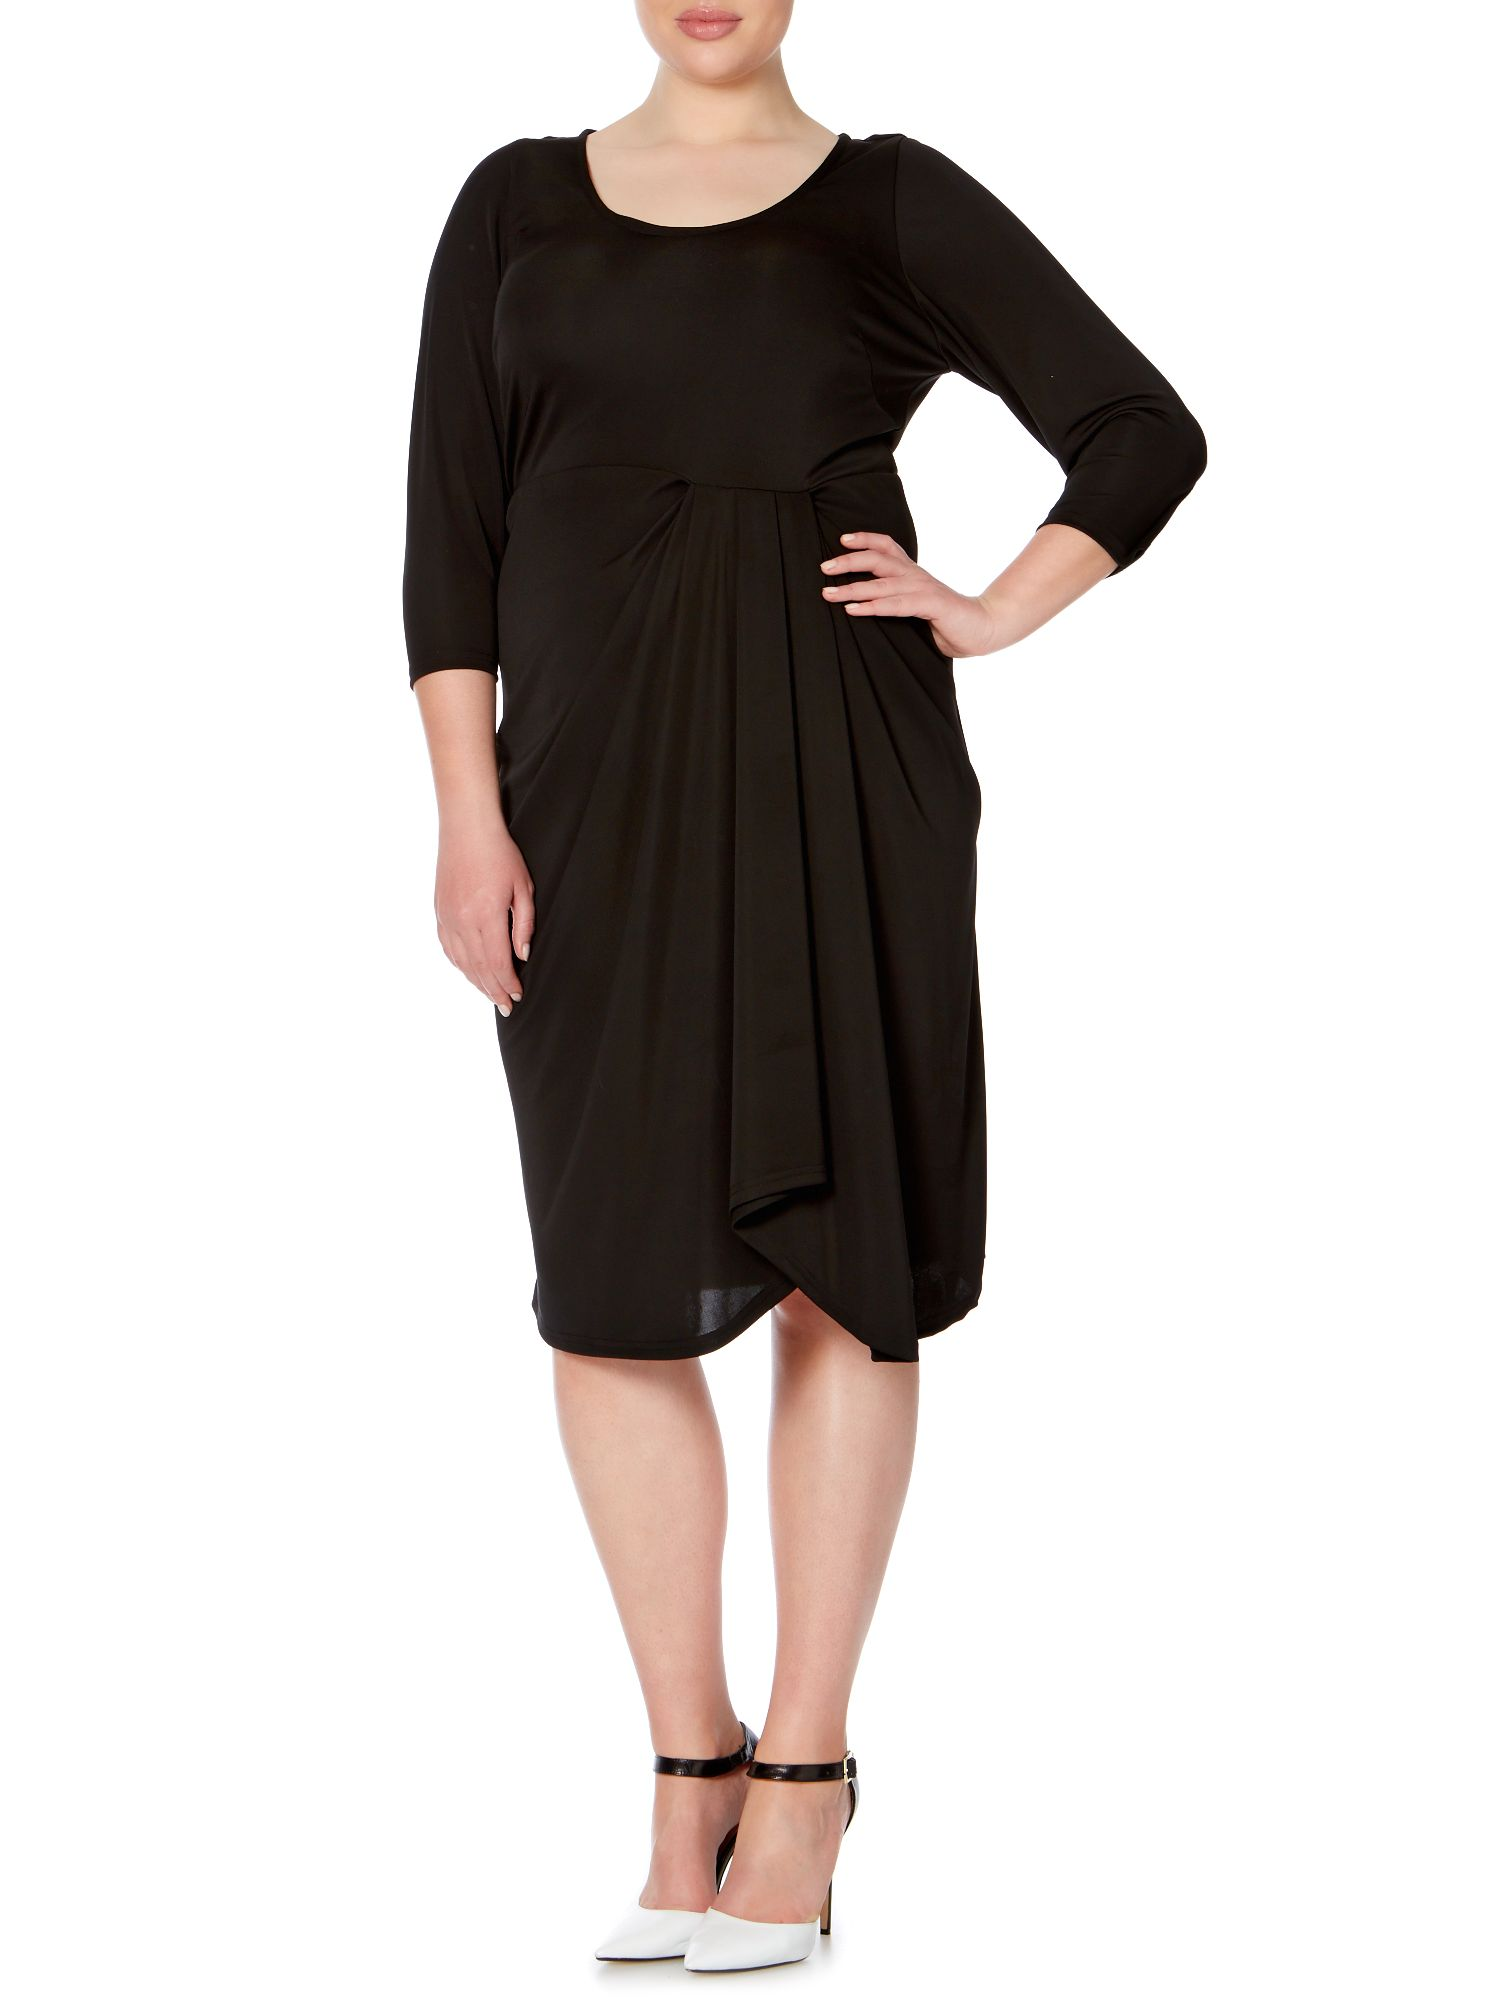 3/4 sleeve gathered front dress